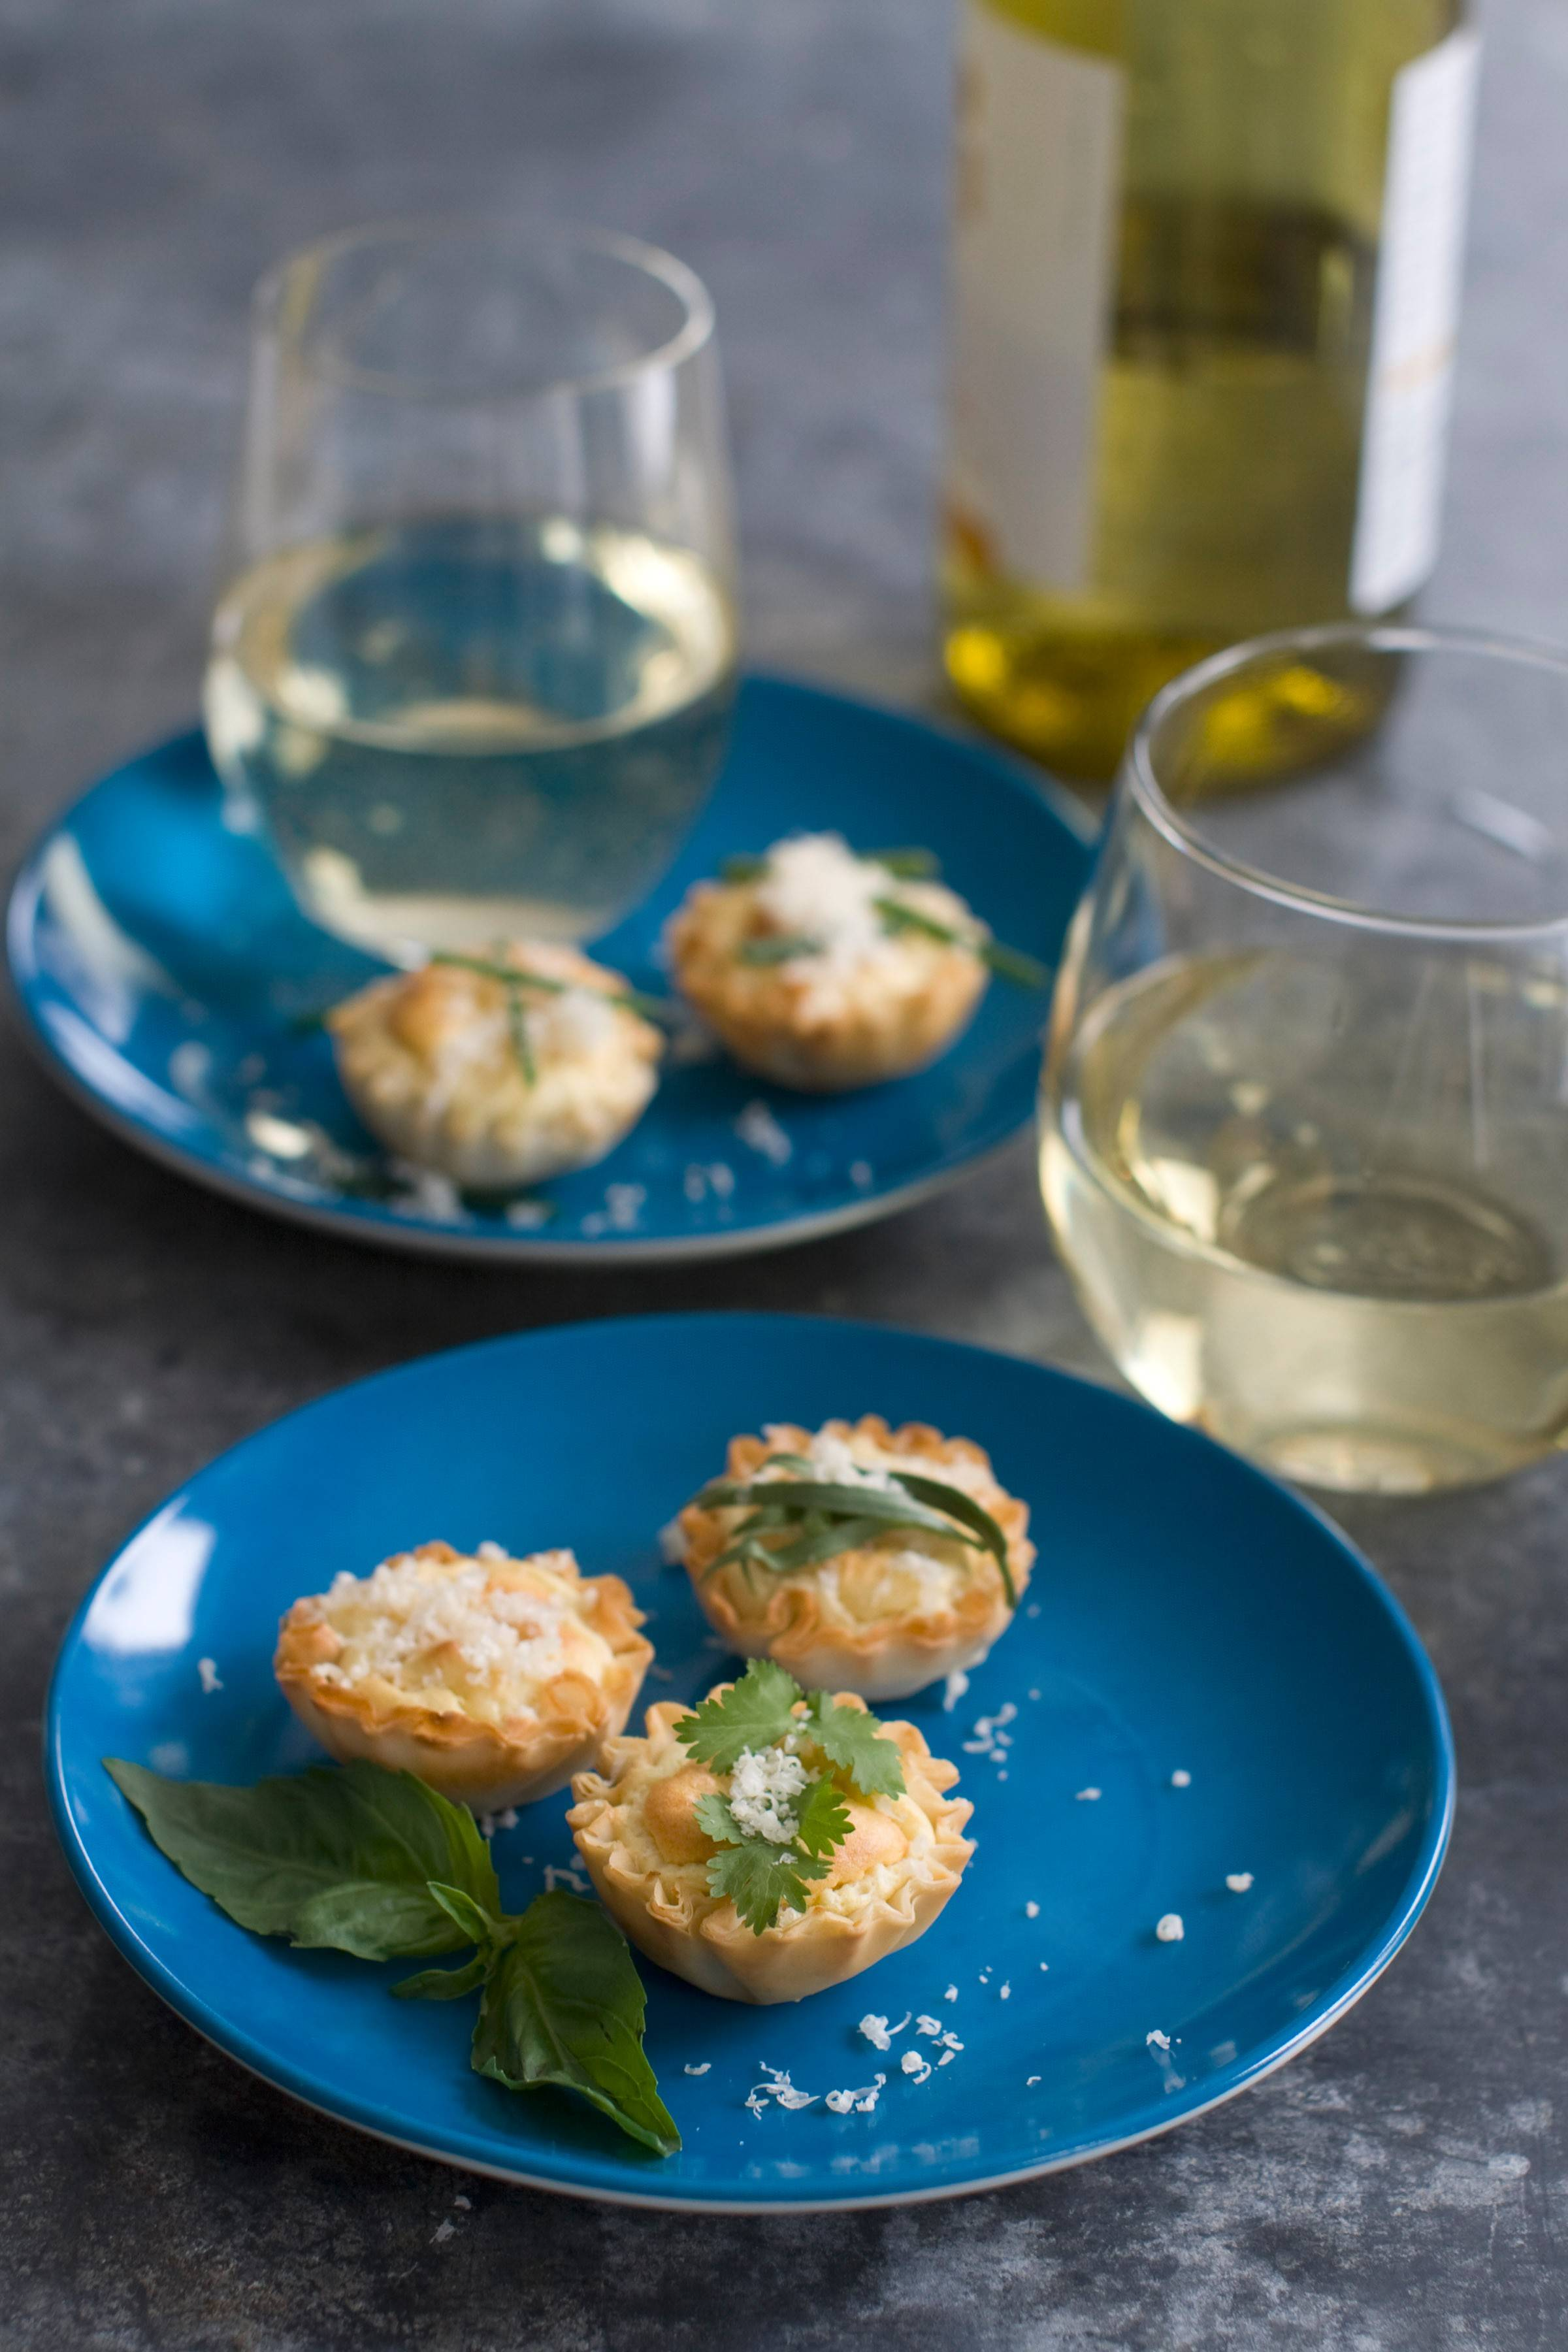 Each of these anti-gravity goat cheese phyllo bites is fairly low in calories — no more than 15 calories per shell.